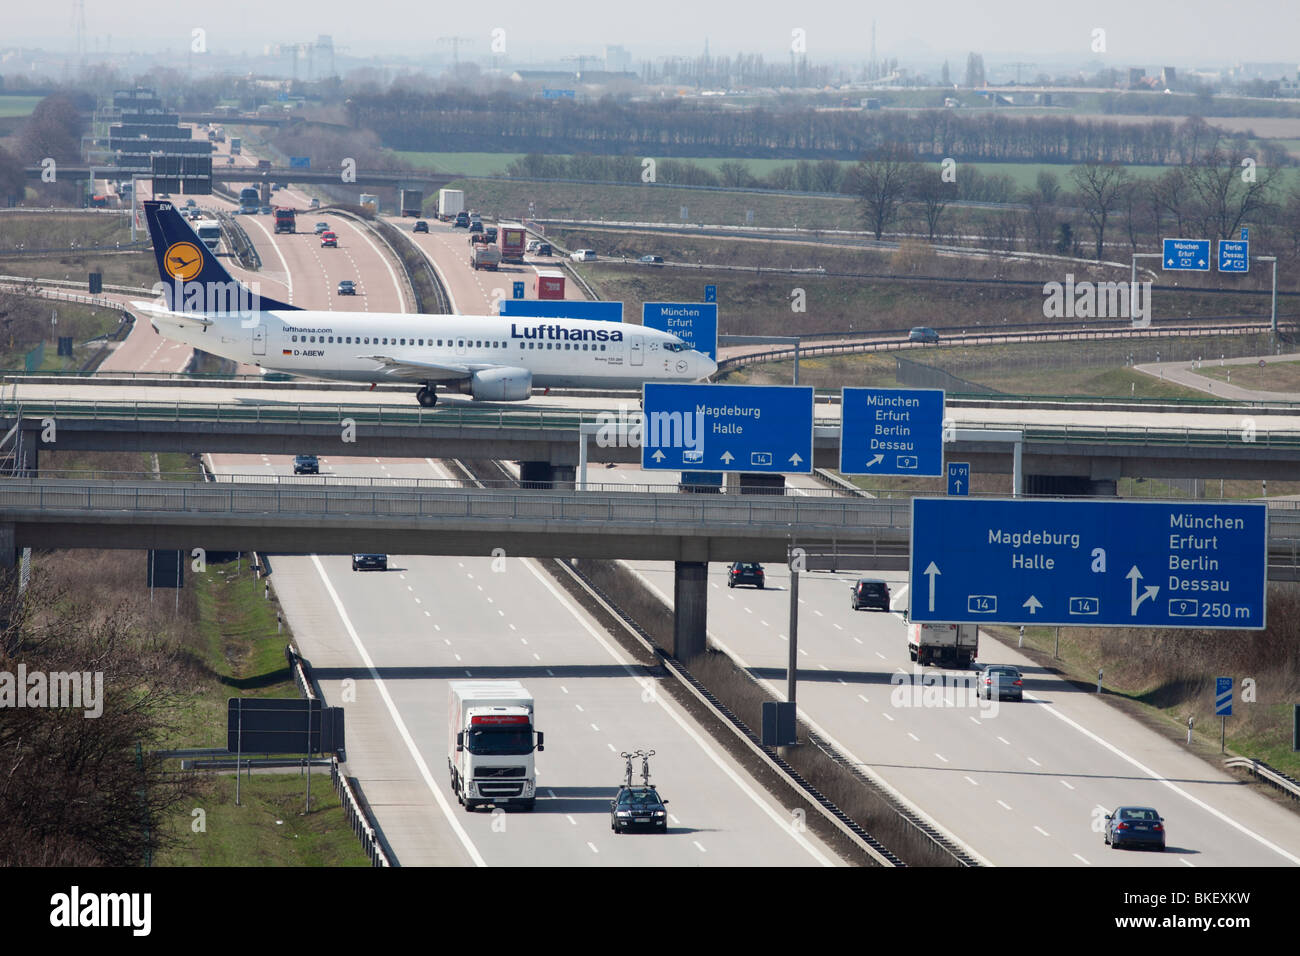 airplane of Lufthansa on motorway bridge at the airport Leipzig-Halle in Germany - Stock Image